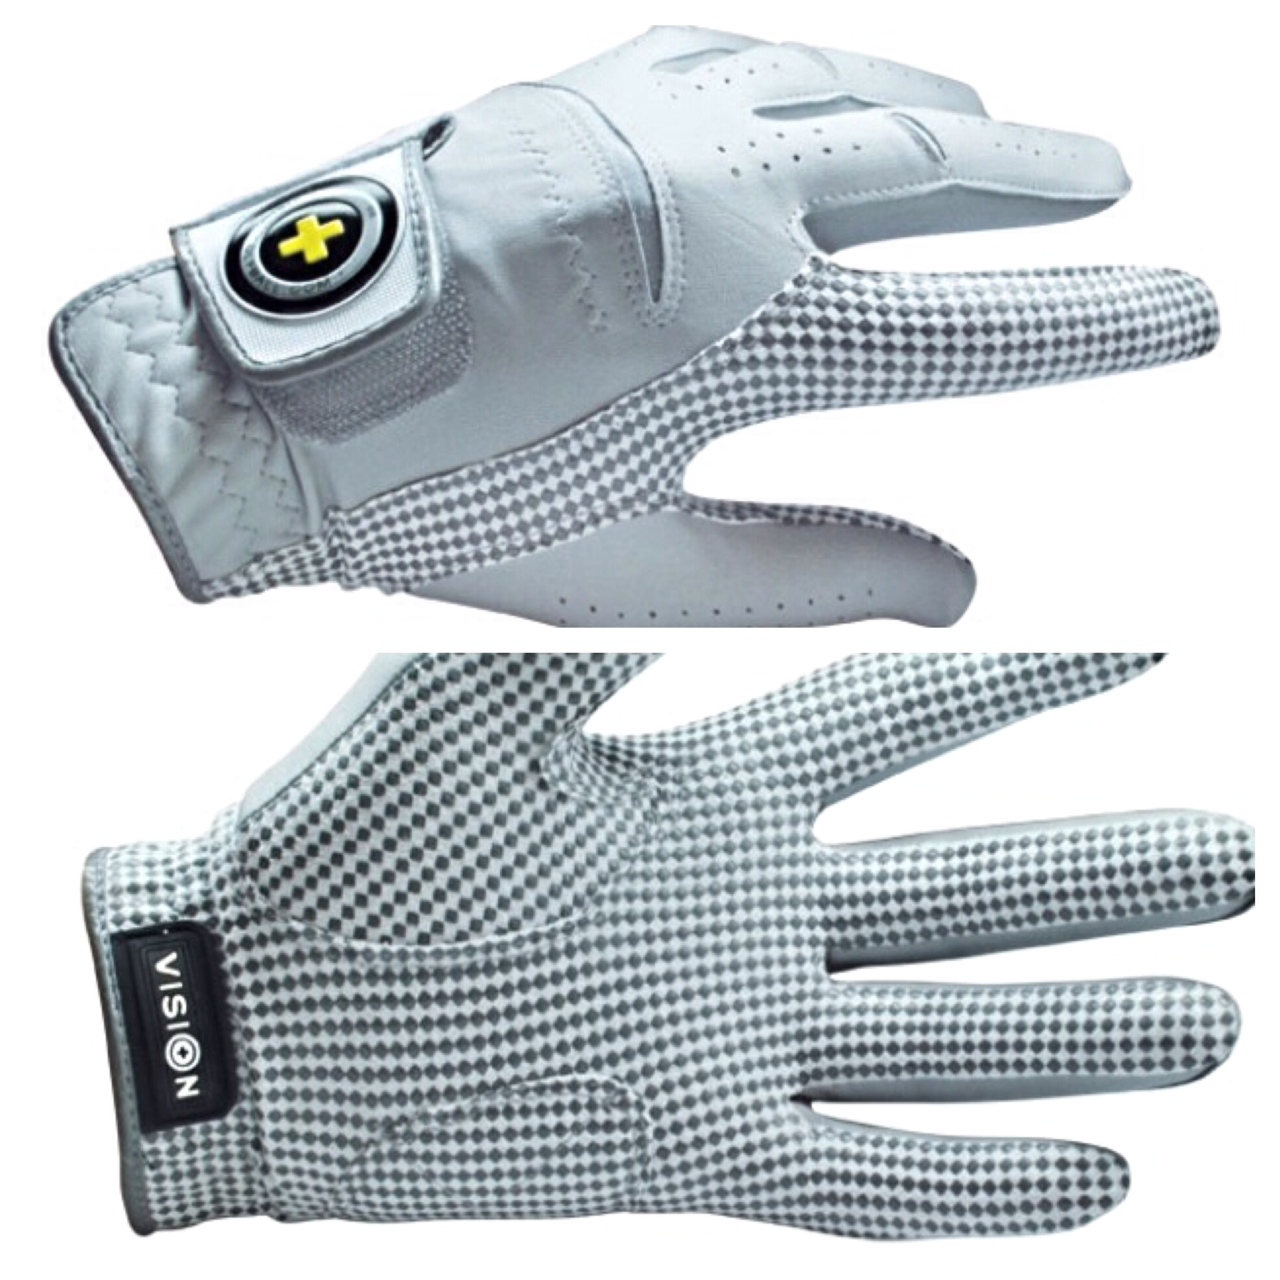 VisionGolfGlove